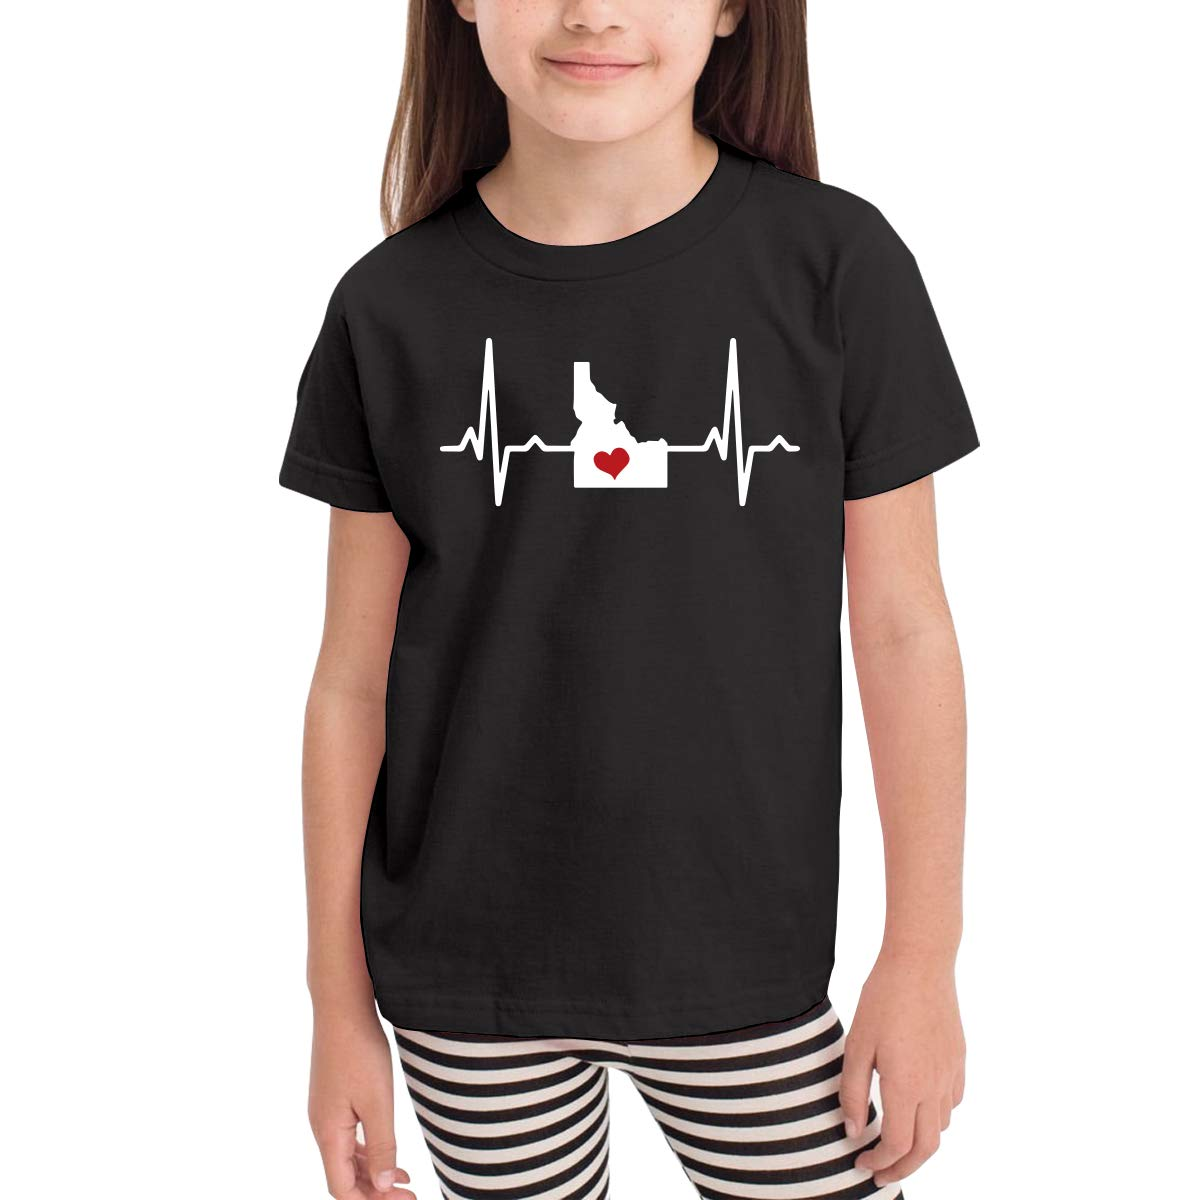 Childrens Idaho Home Love Heartbeat Cute Short Sleeve Tee Tops Size 2-6